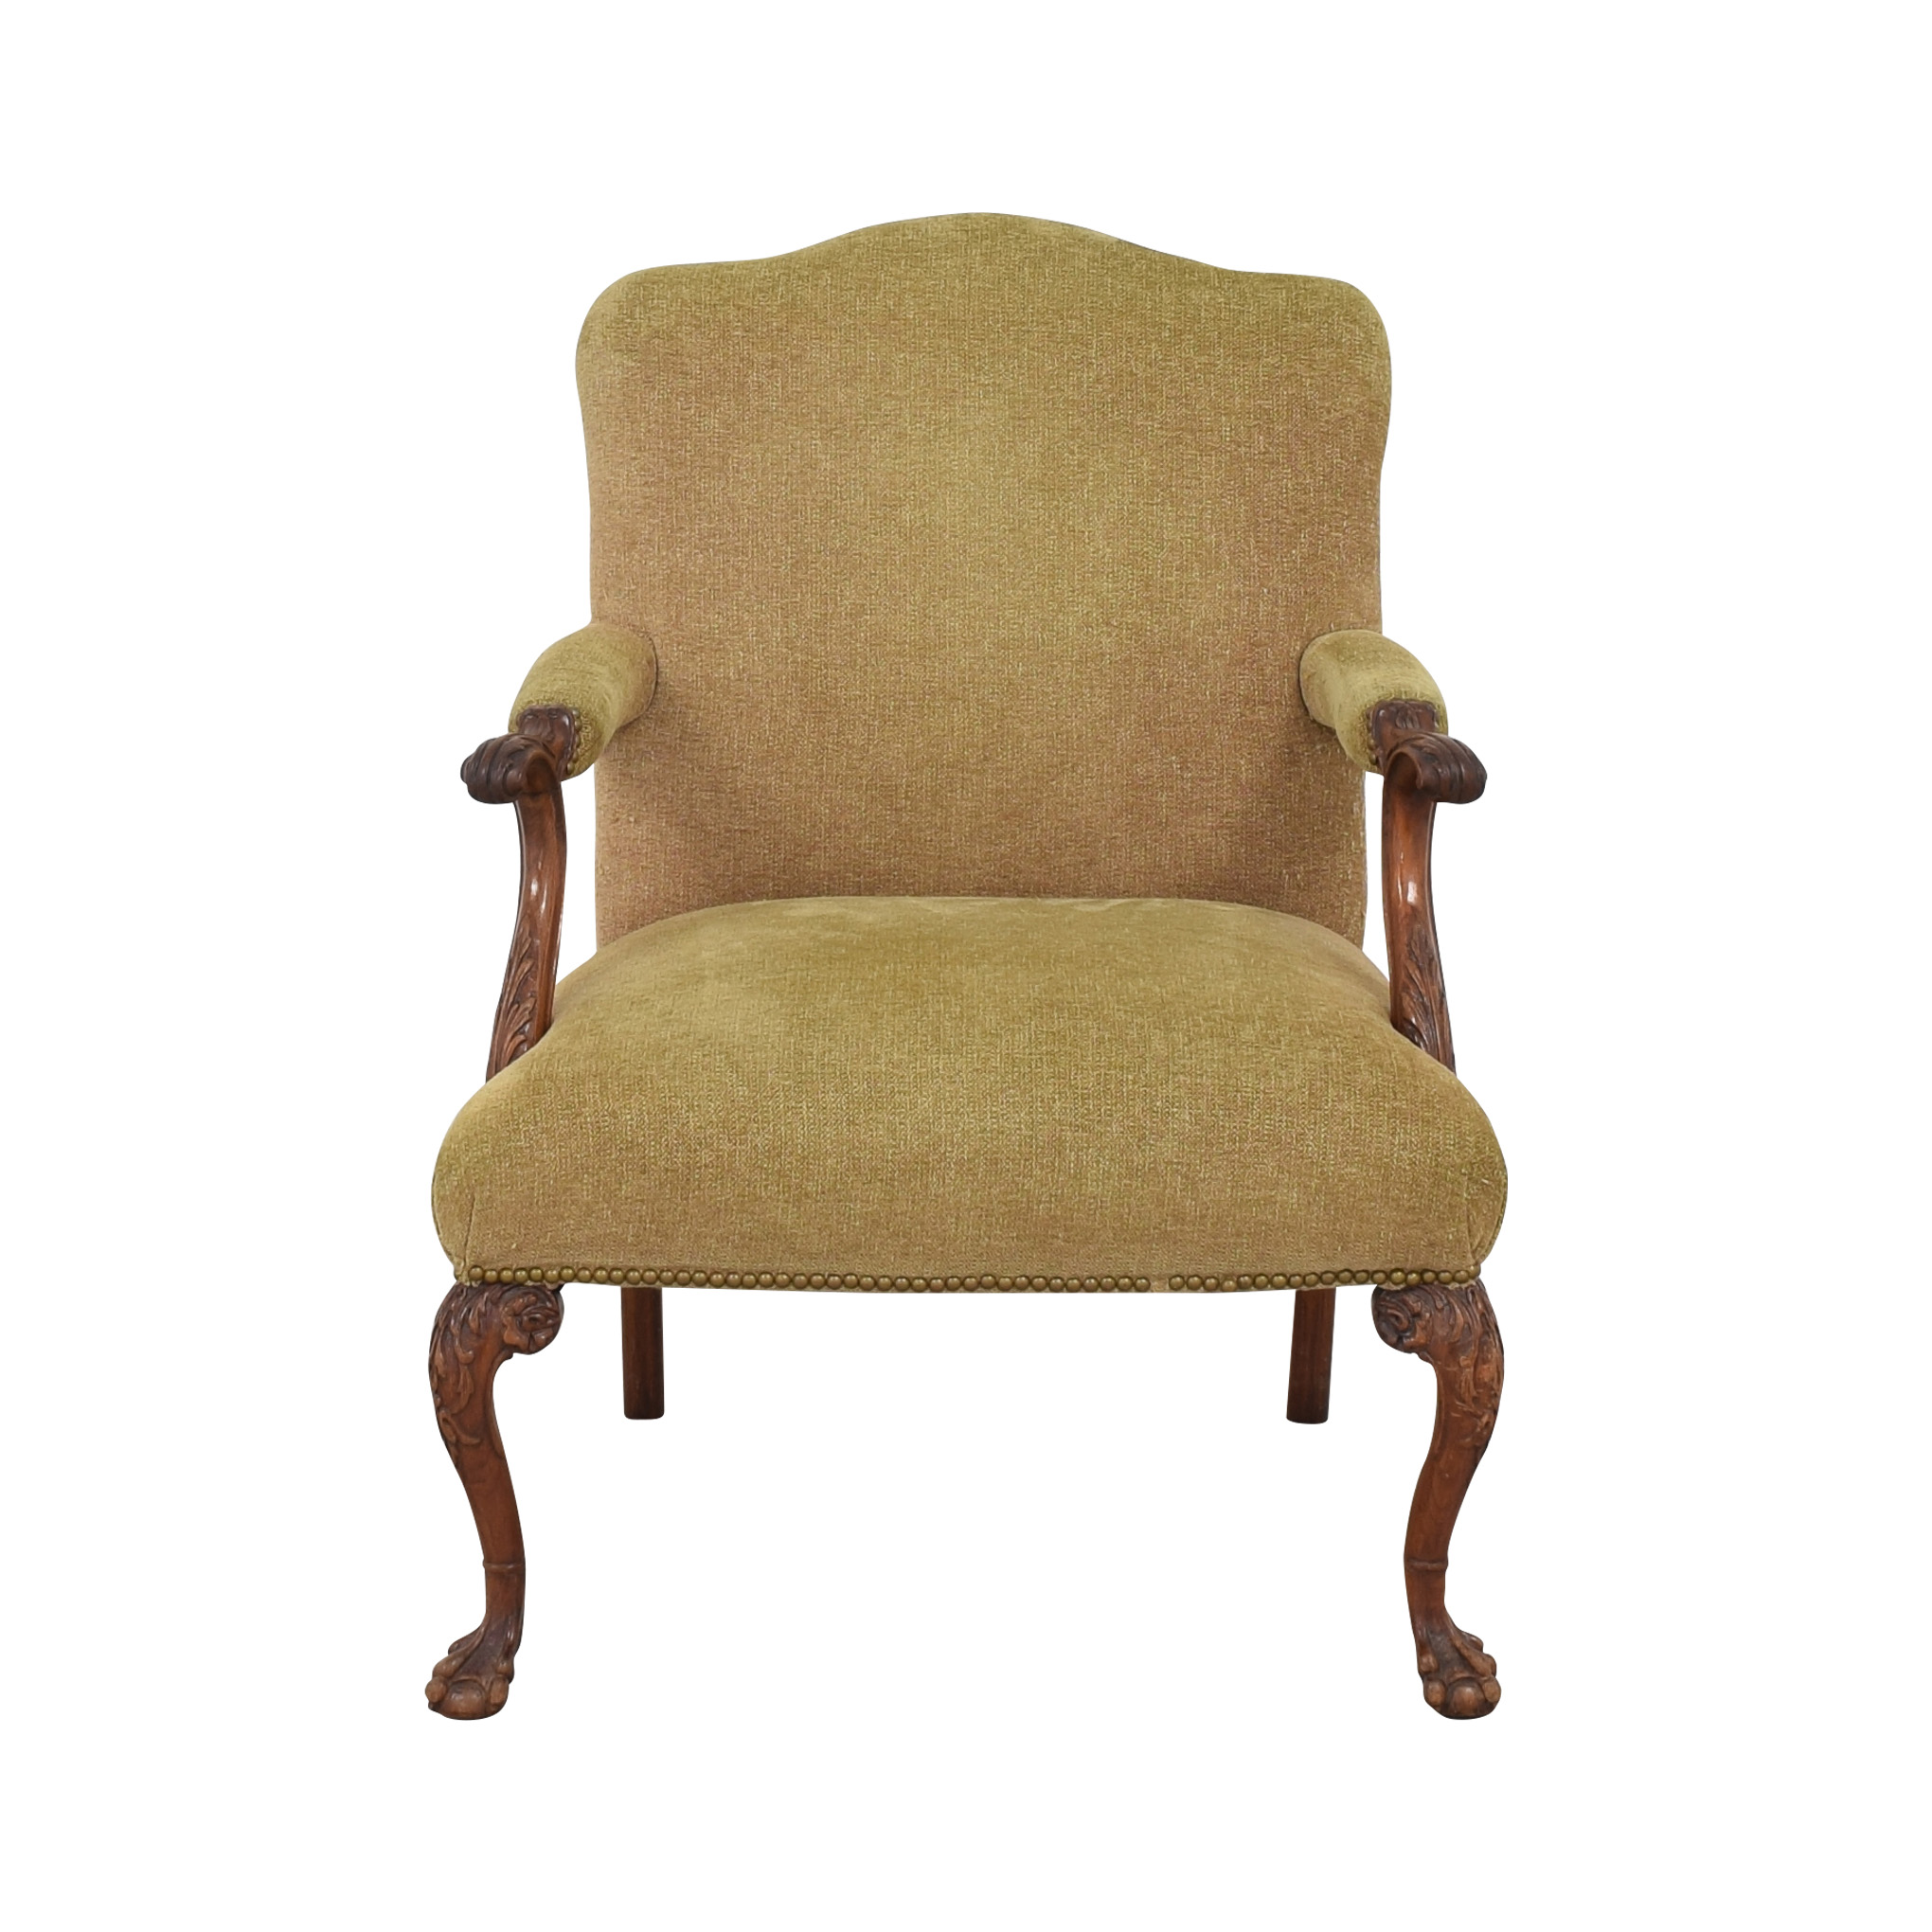 Regency Regency Upholstered Chippendale Occasional Chair ma